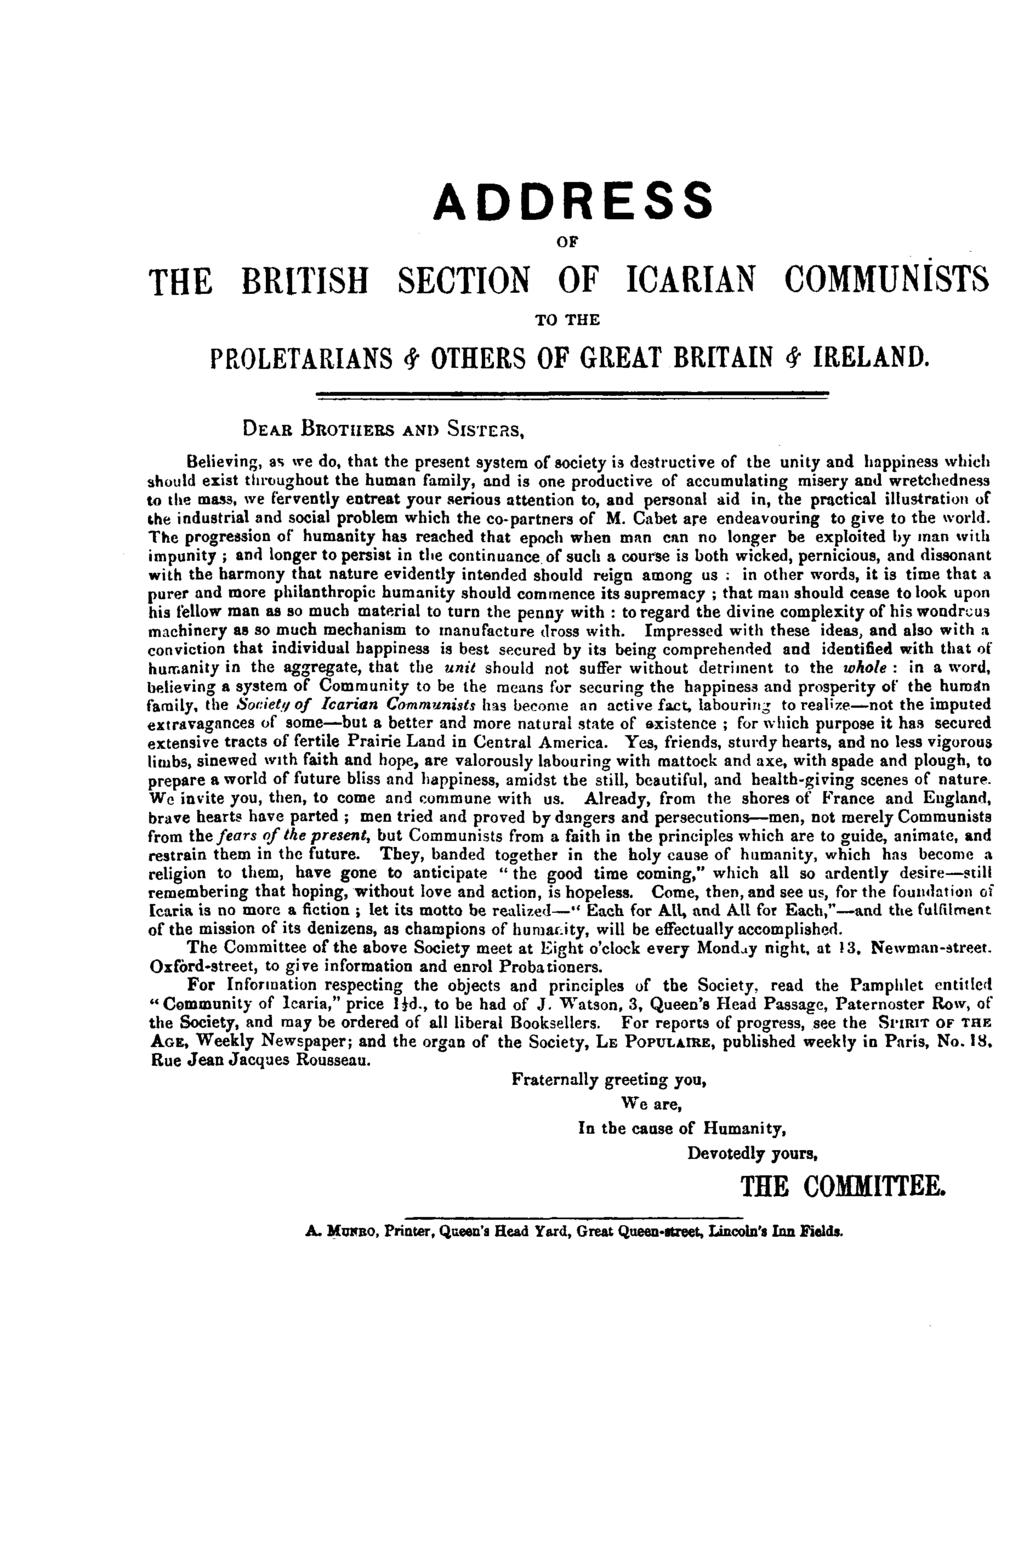 THE BRITISH ADDRESS OF SECTION OF ICARIAN COMMUNISTS TO THE PROLETARIANS # OTHERS OF GREAT BRITAIN <$ IRELAND.